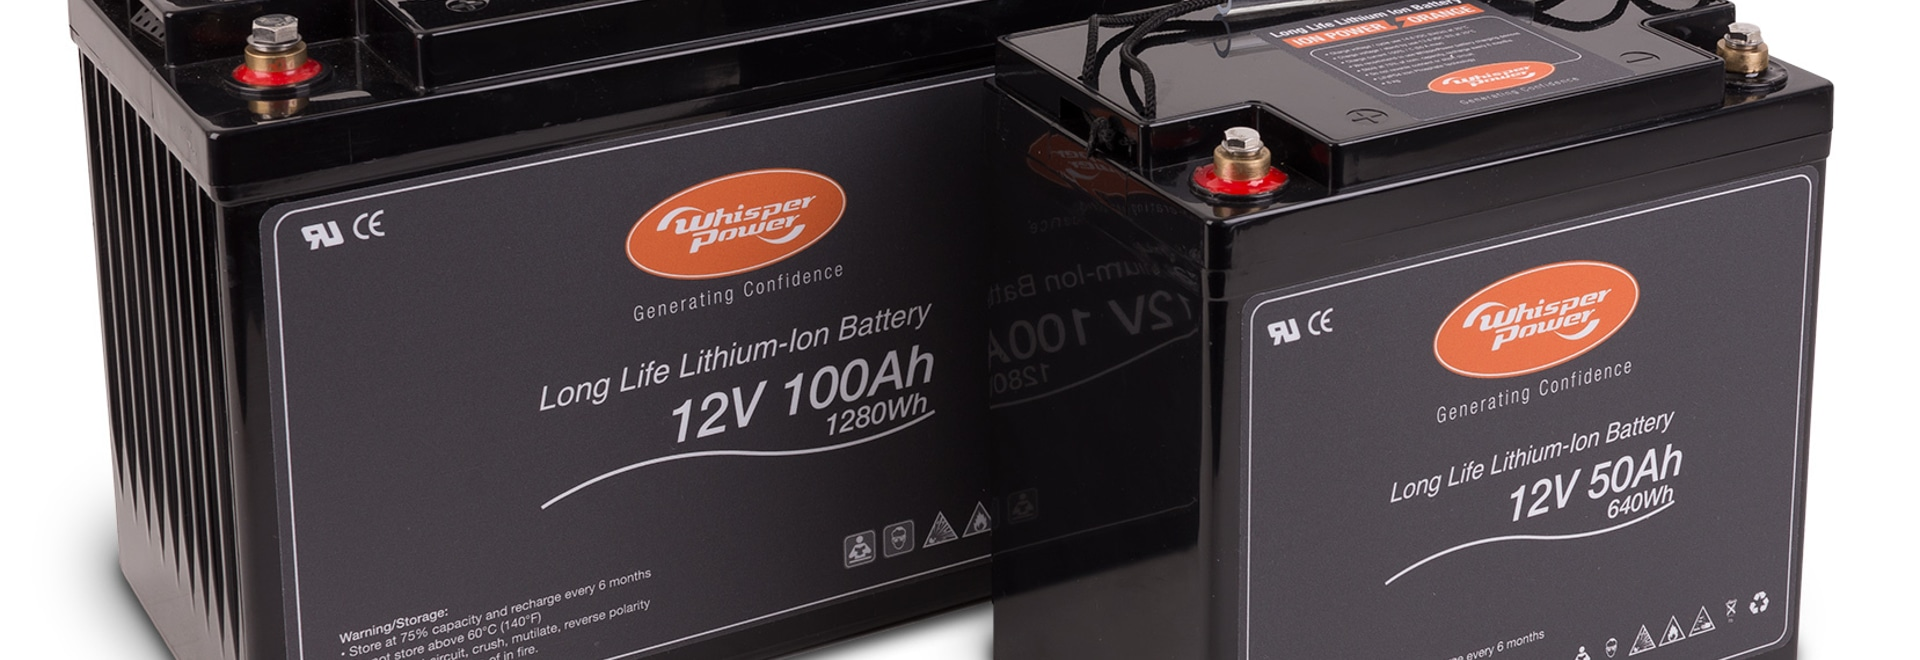 WHISPERPOWER LANCE UNE NOUVELLE BATTERIE LITHIUM-ION